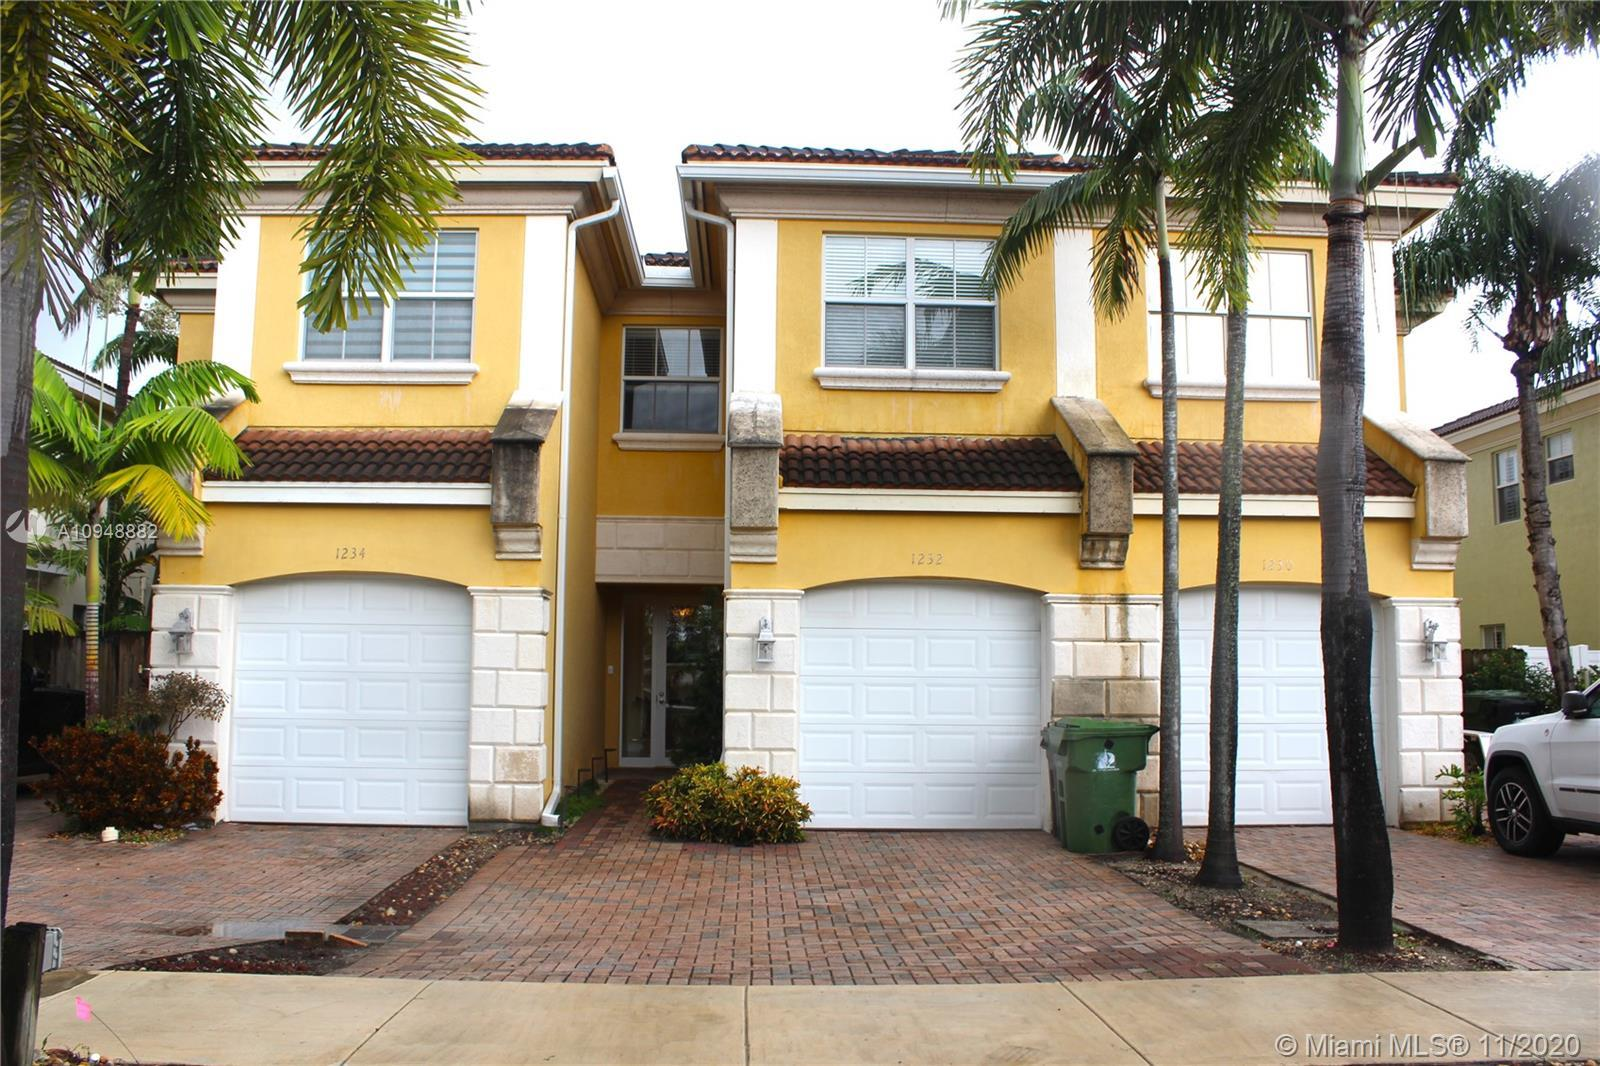 Lake Ridge fee simple 3/2.5 townhome with private pool and 1CG. Minutes from downtown Ft Lauderdale,